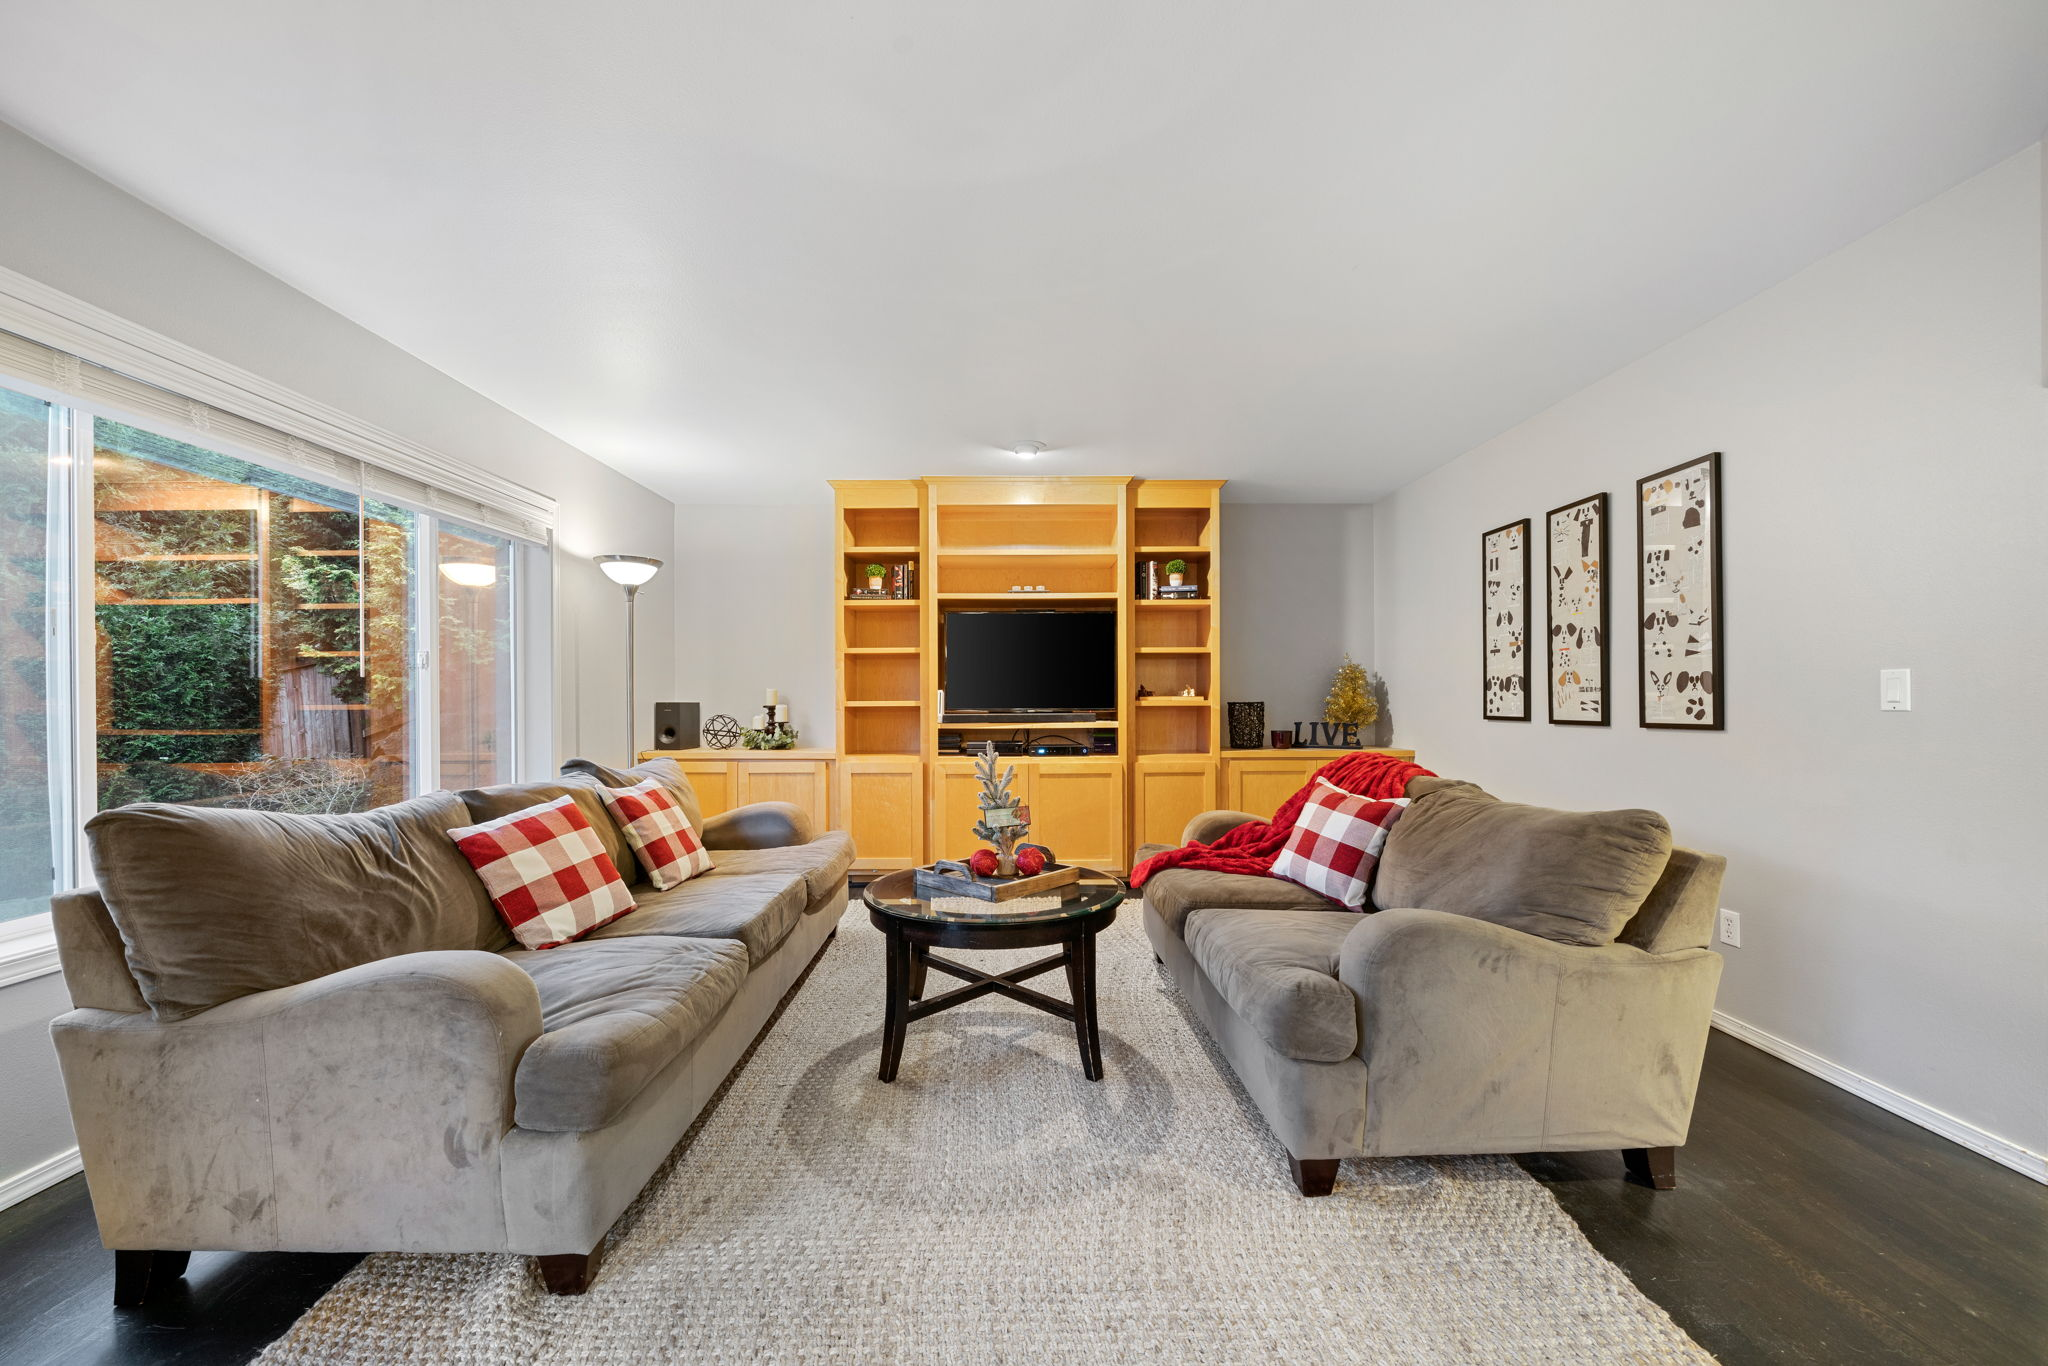 Family room is large and has build in custom cabinetry. Great location for your art, books, and your tv of course!